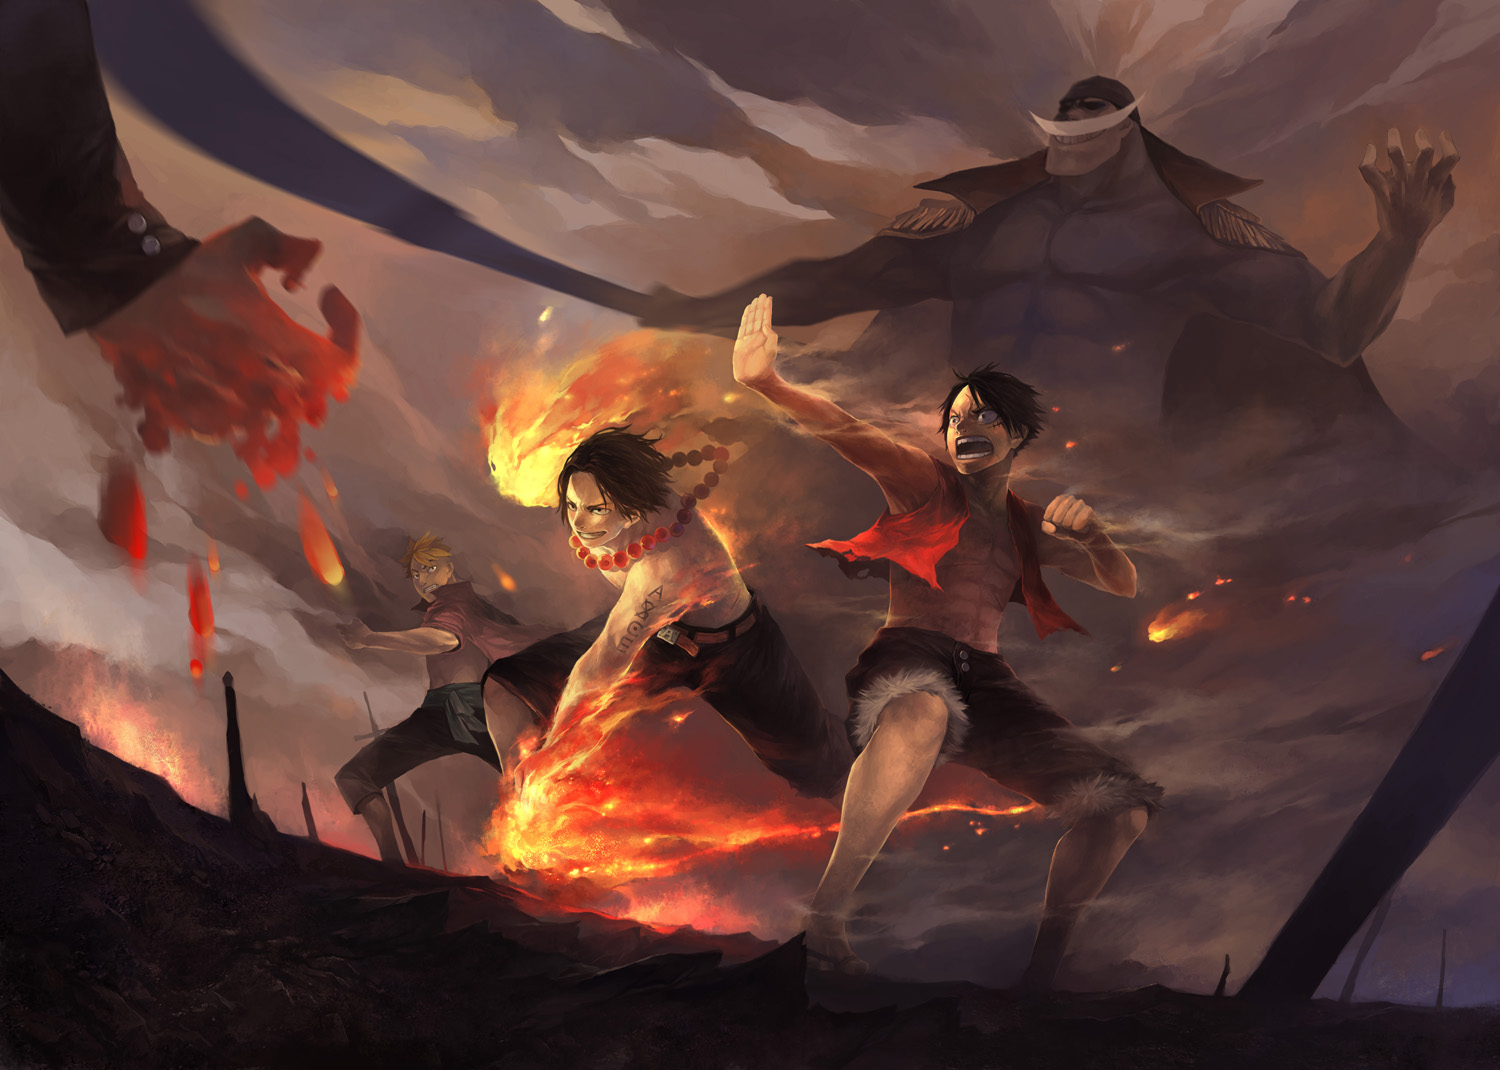 Story Of Monkey D Luffy Fighting Style Monkey D Luffy In Anime One Piece